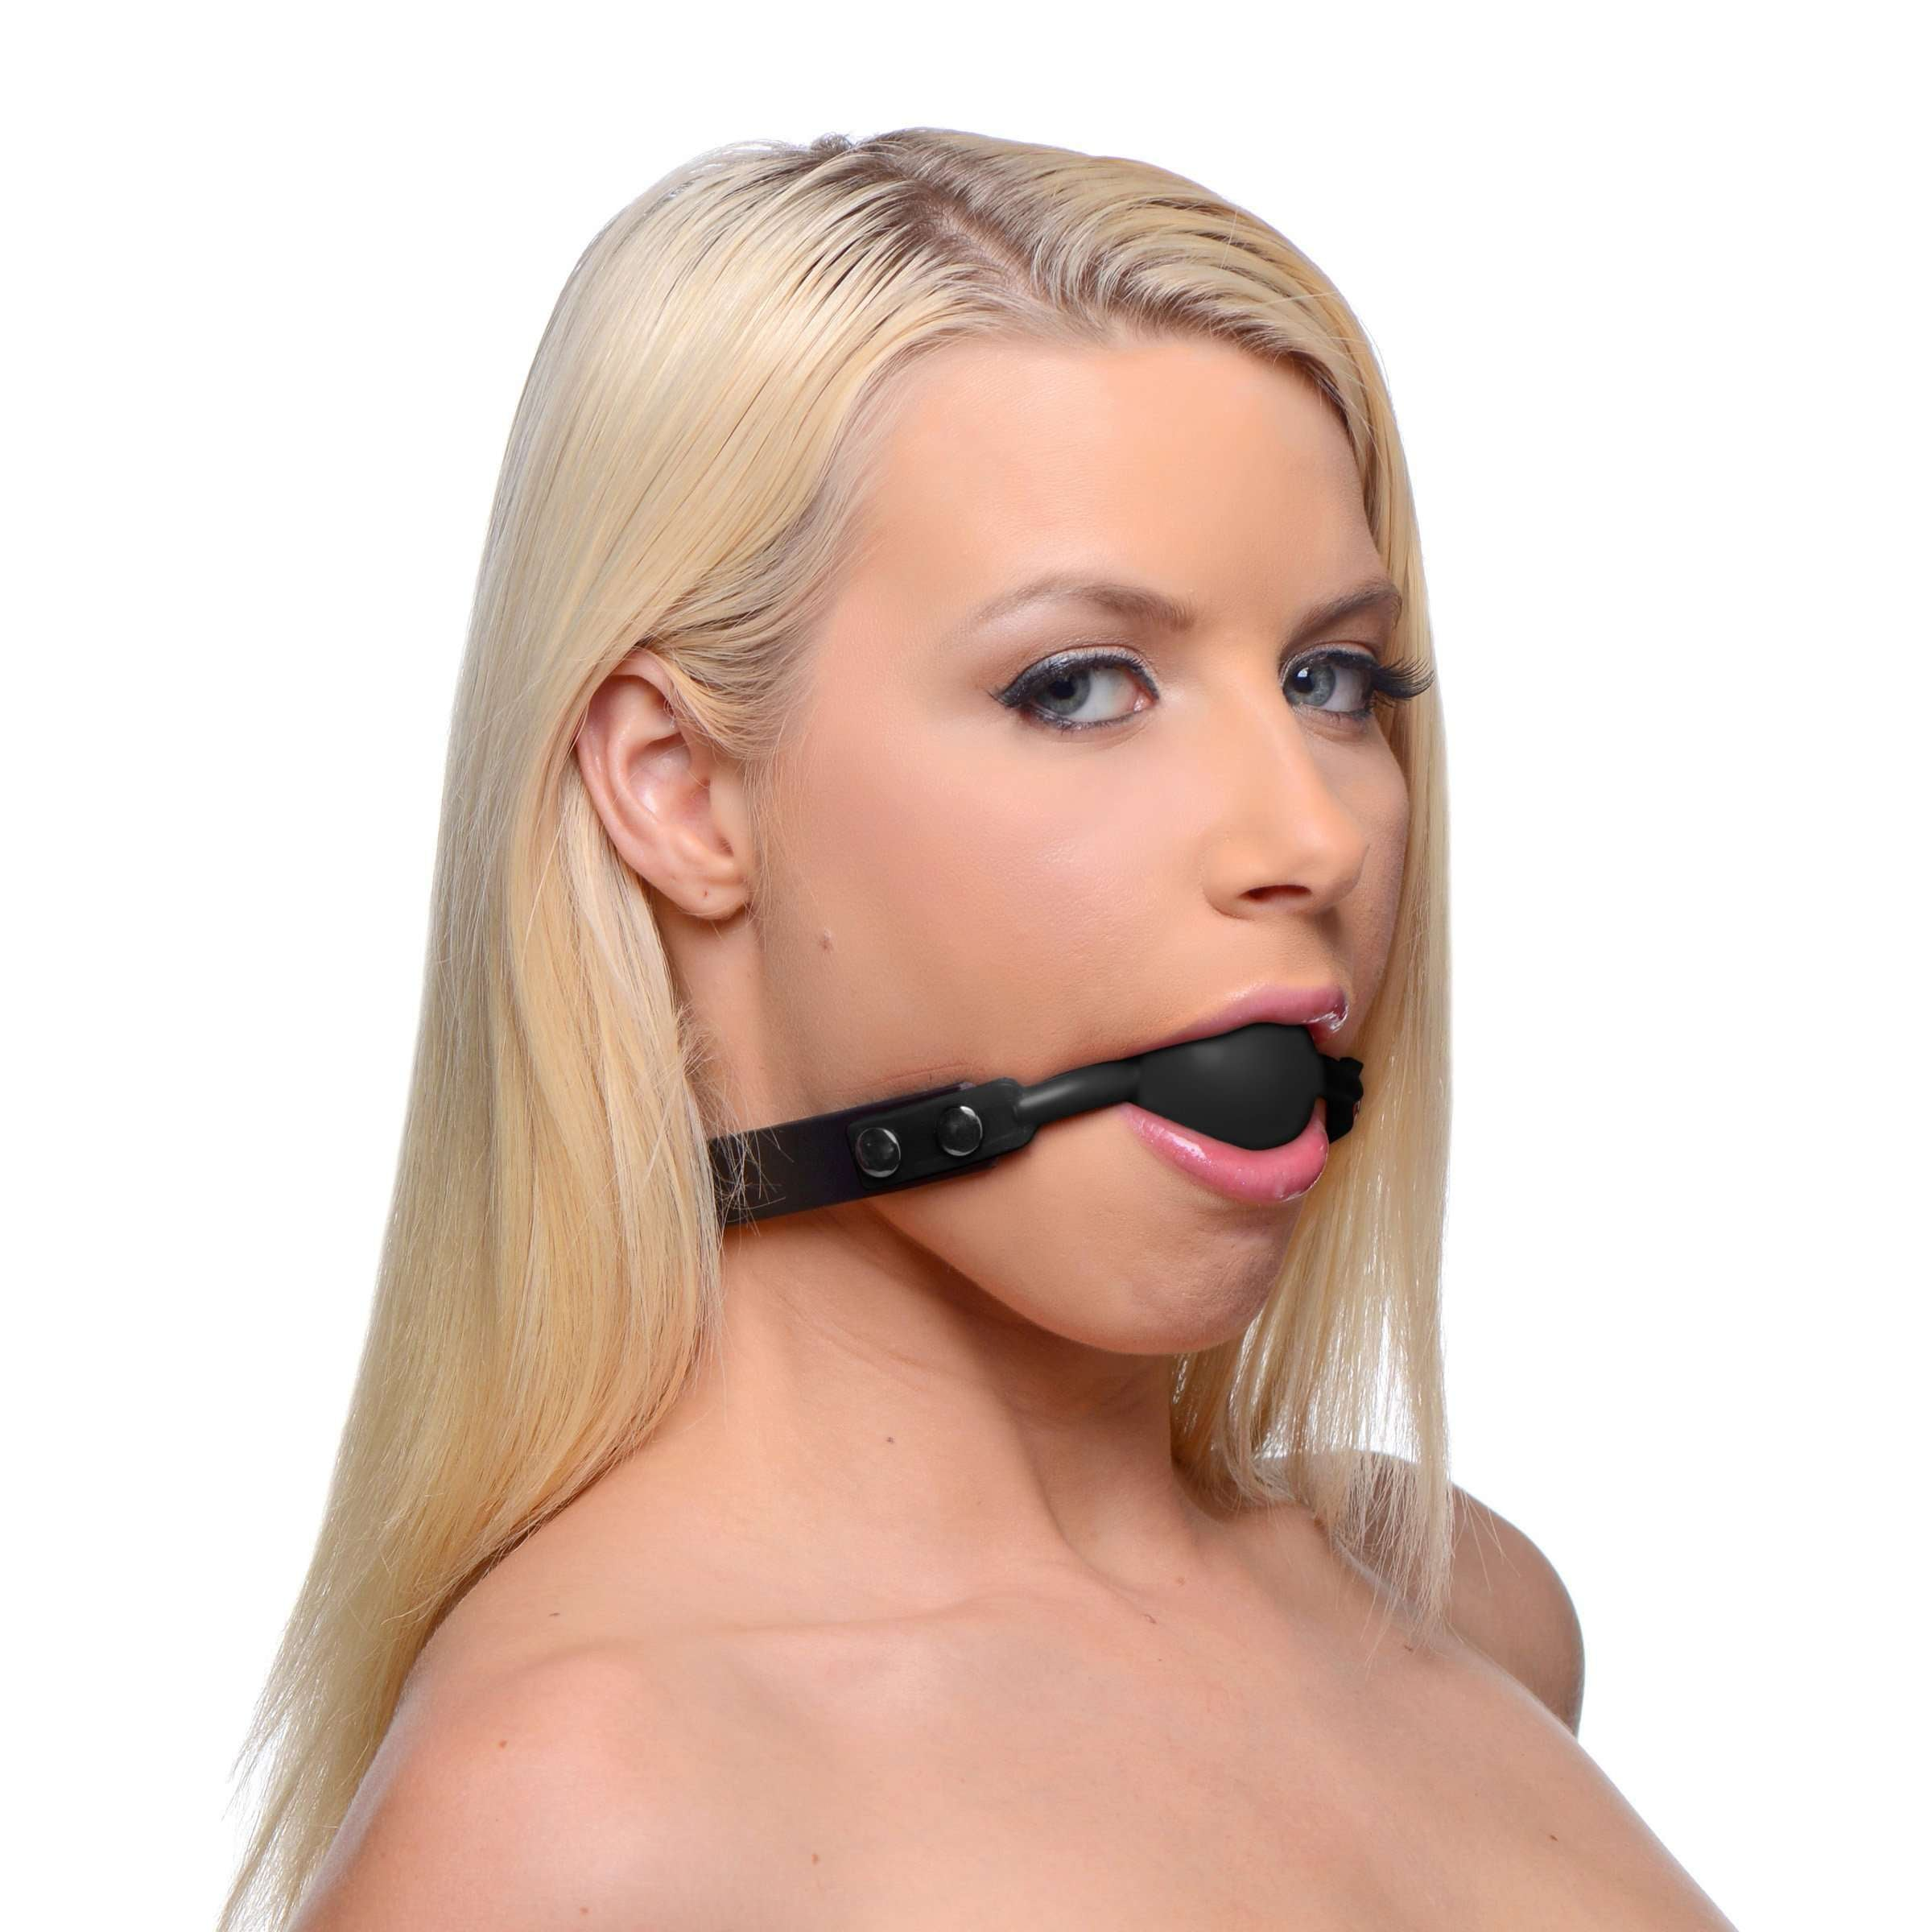 Premium Hush Locking Silicone Comfort Ball Gag